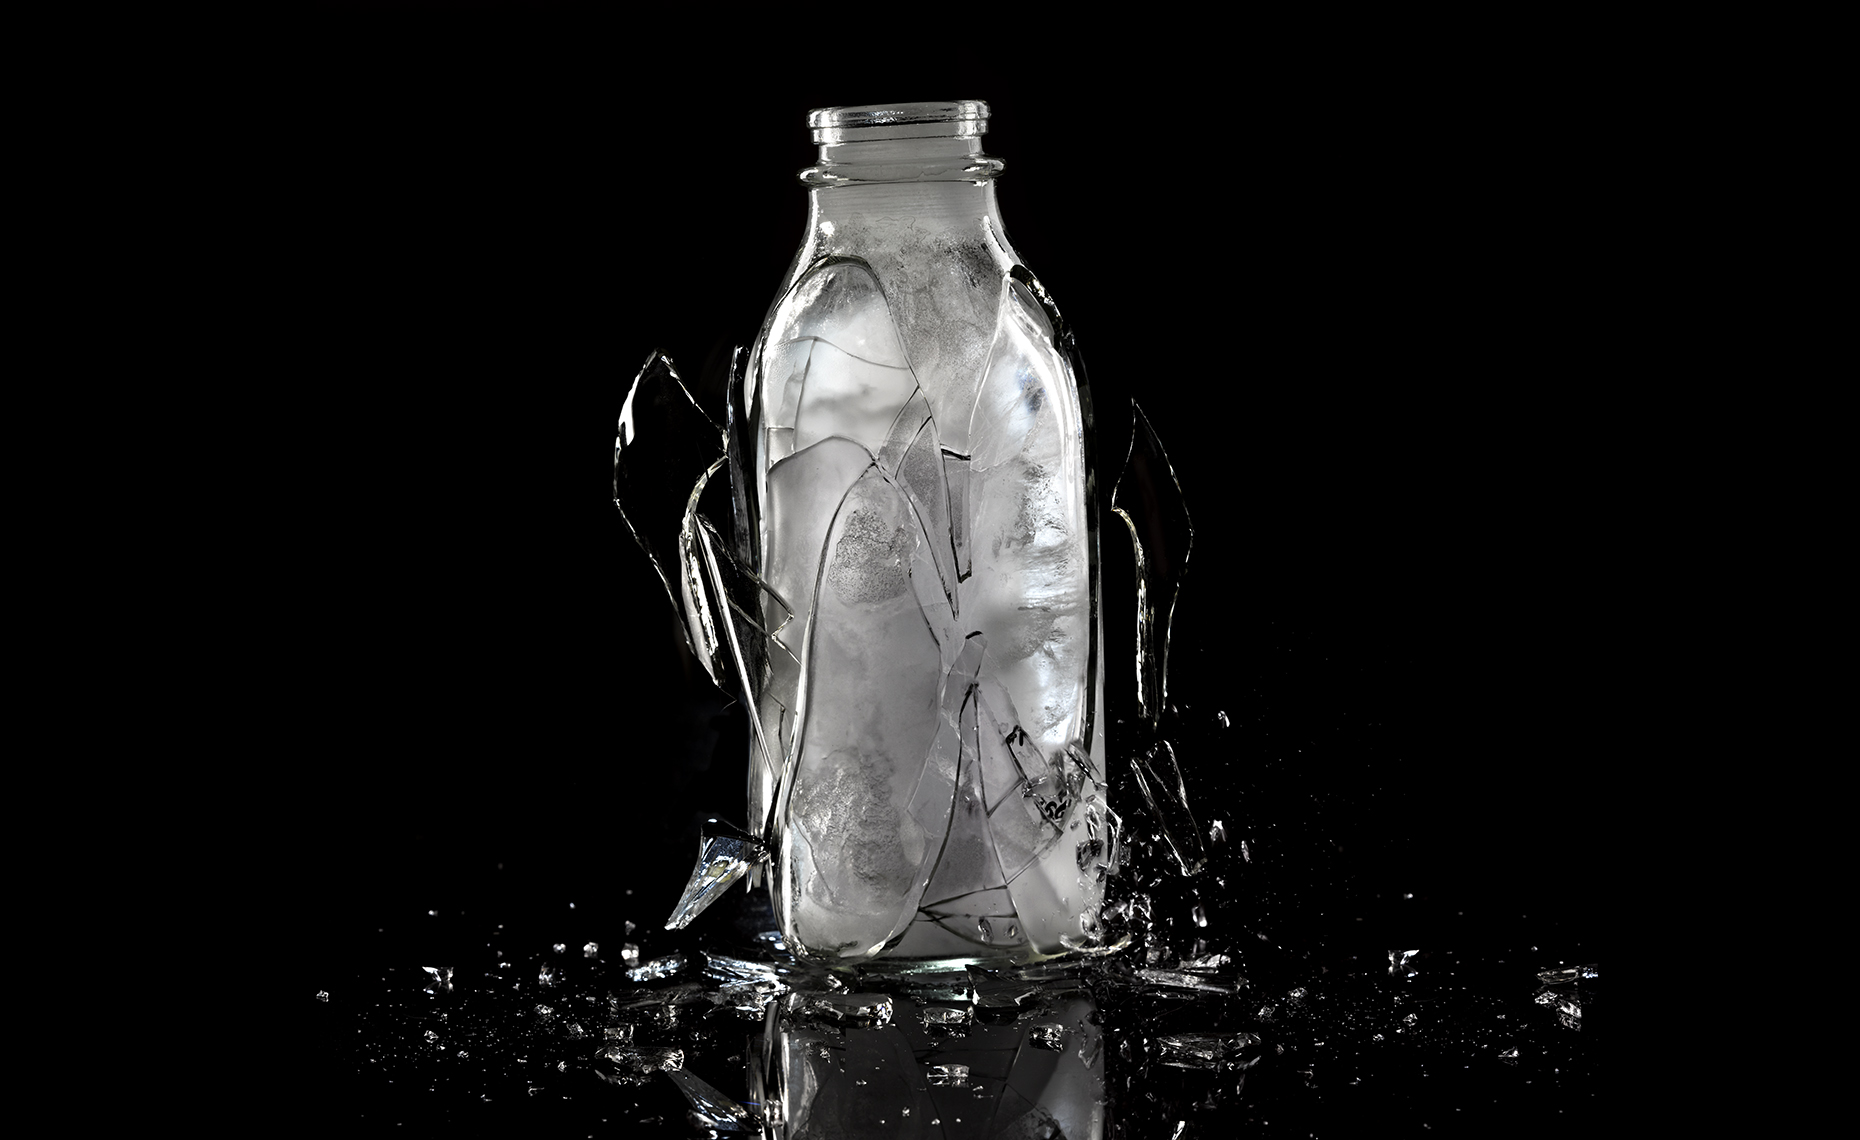 120207_BOTTLE 3824_edit.jpg